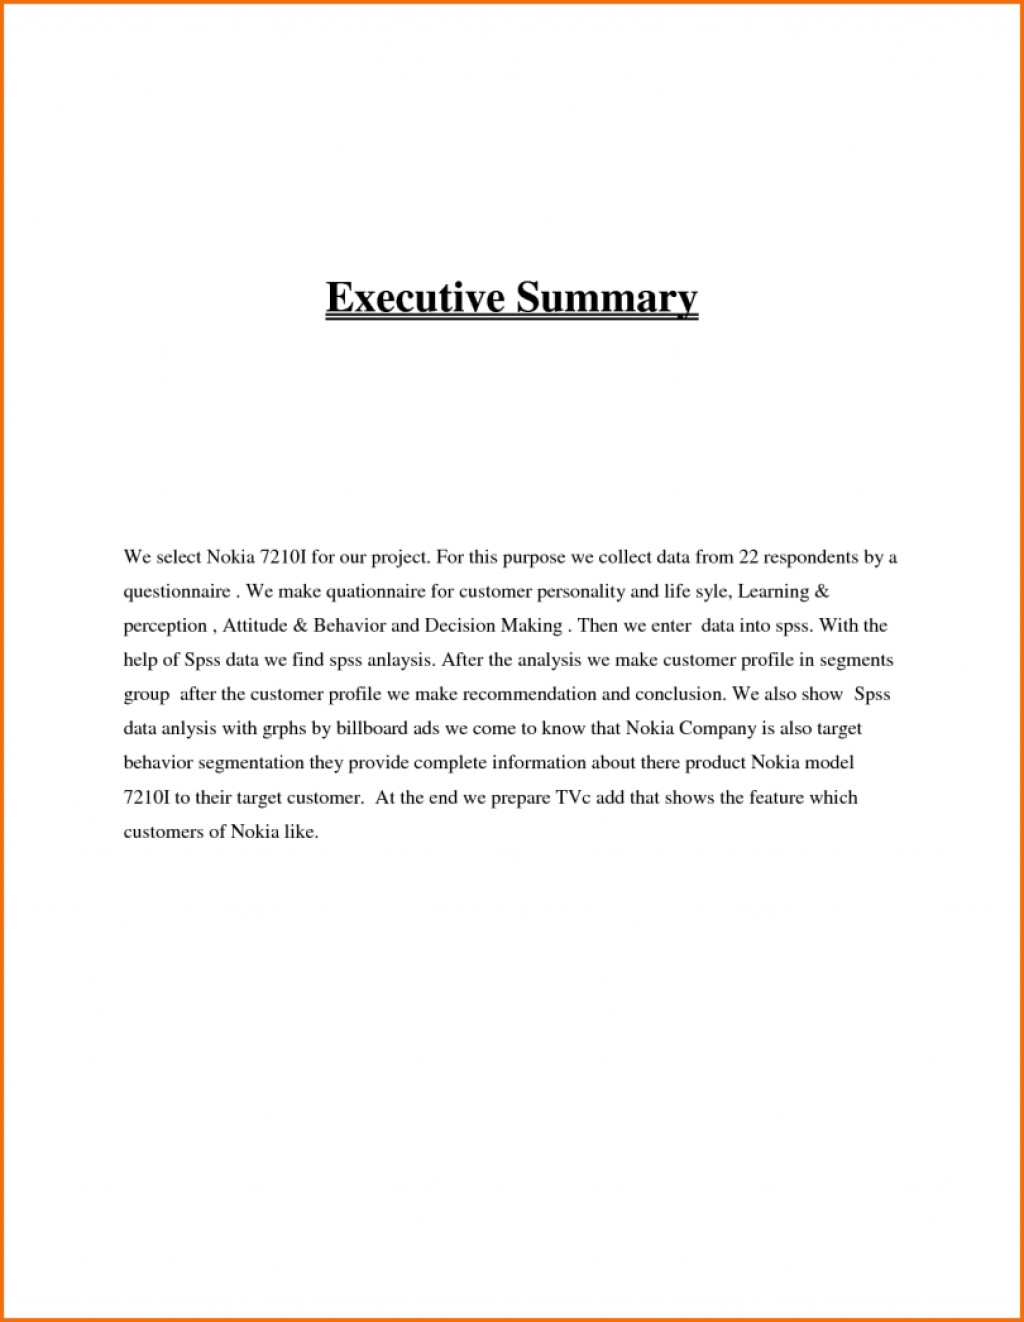 020 Research Paper Executive Summary Example Format Unforgettable Large